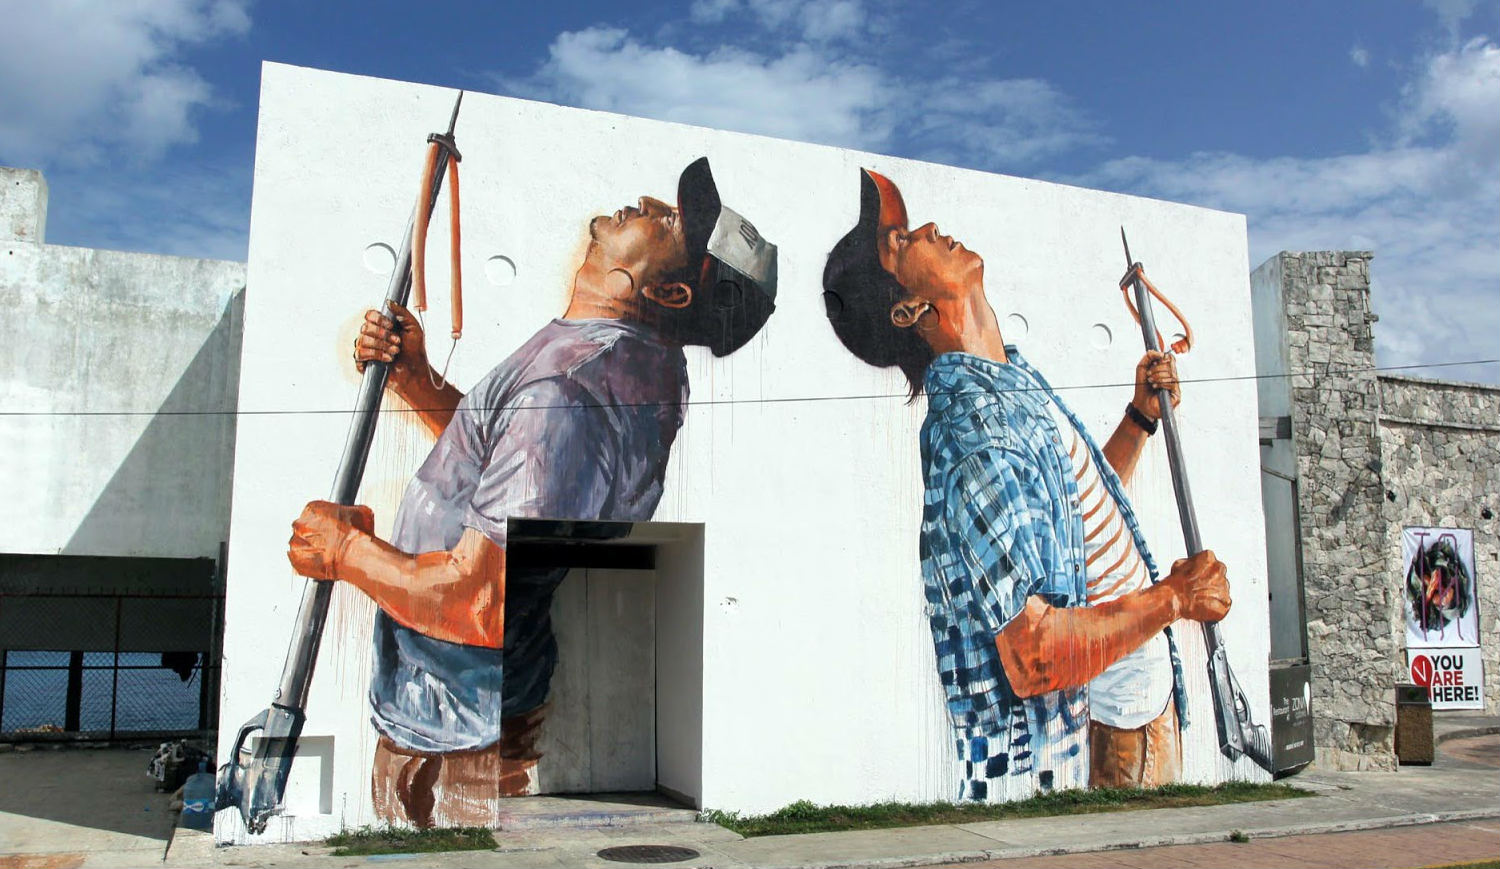 Fintan Magee spearfishing street art in Mexico